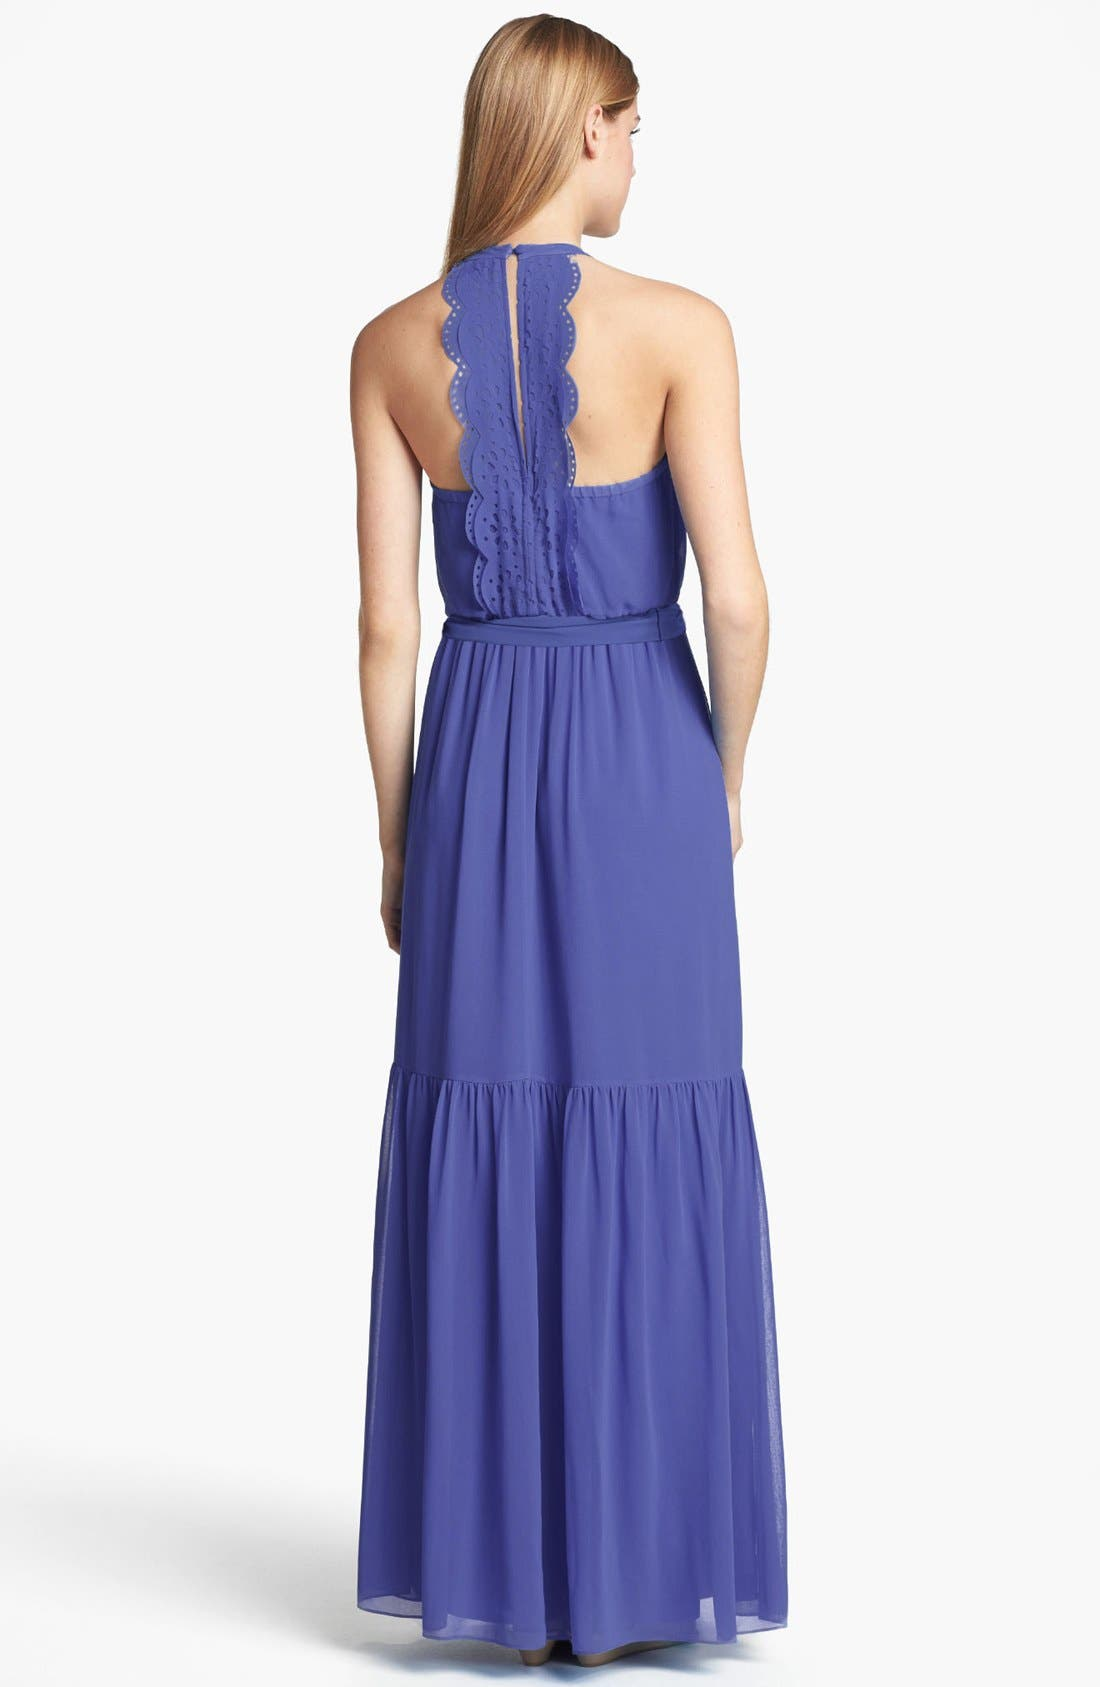 Laser Cutout Maxi Dress,                             Alternate thumbnail 2, color,                             522